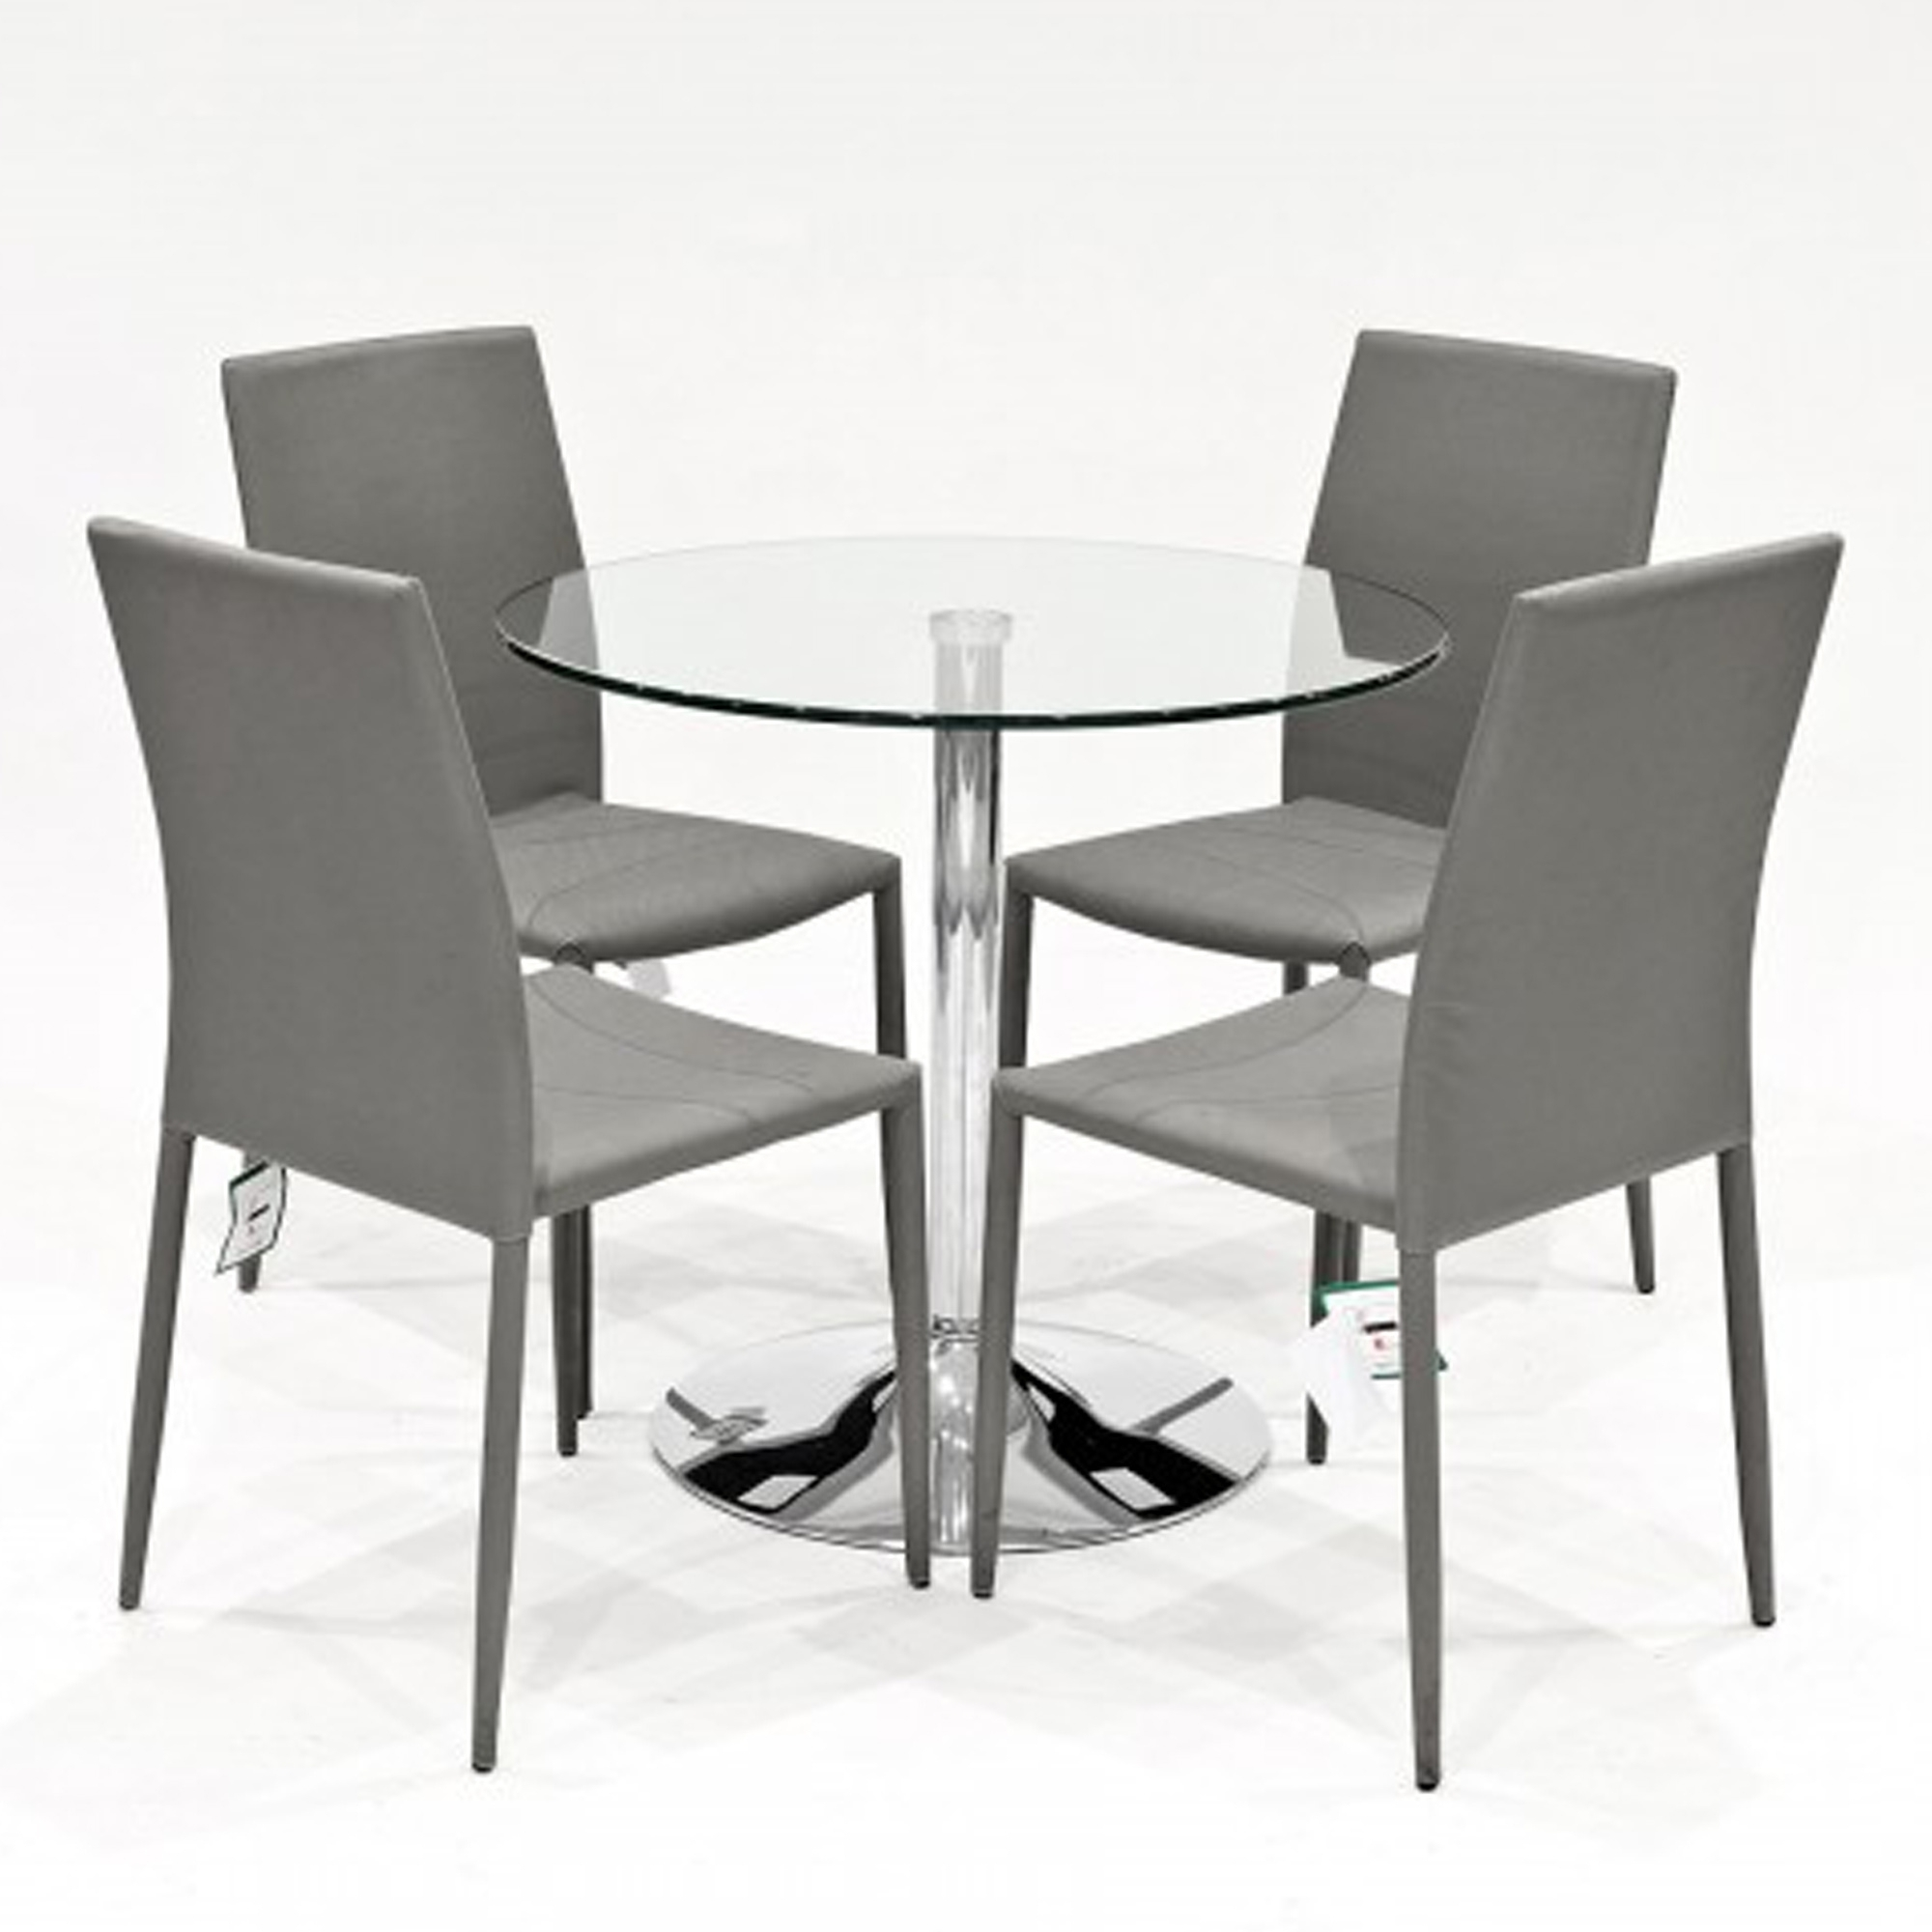 Clear Glass Dining Tables And Chairs Pertaining To Most Recently Released Grey Selina Clear Glass Dining Set (View 6 of 25)